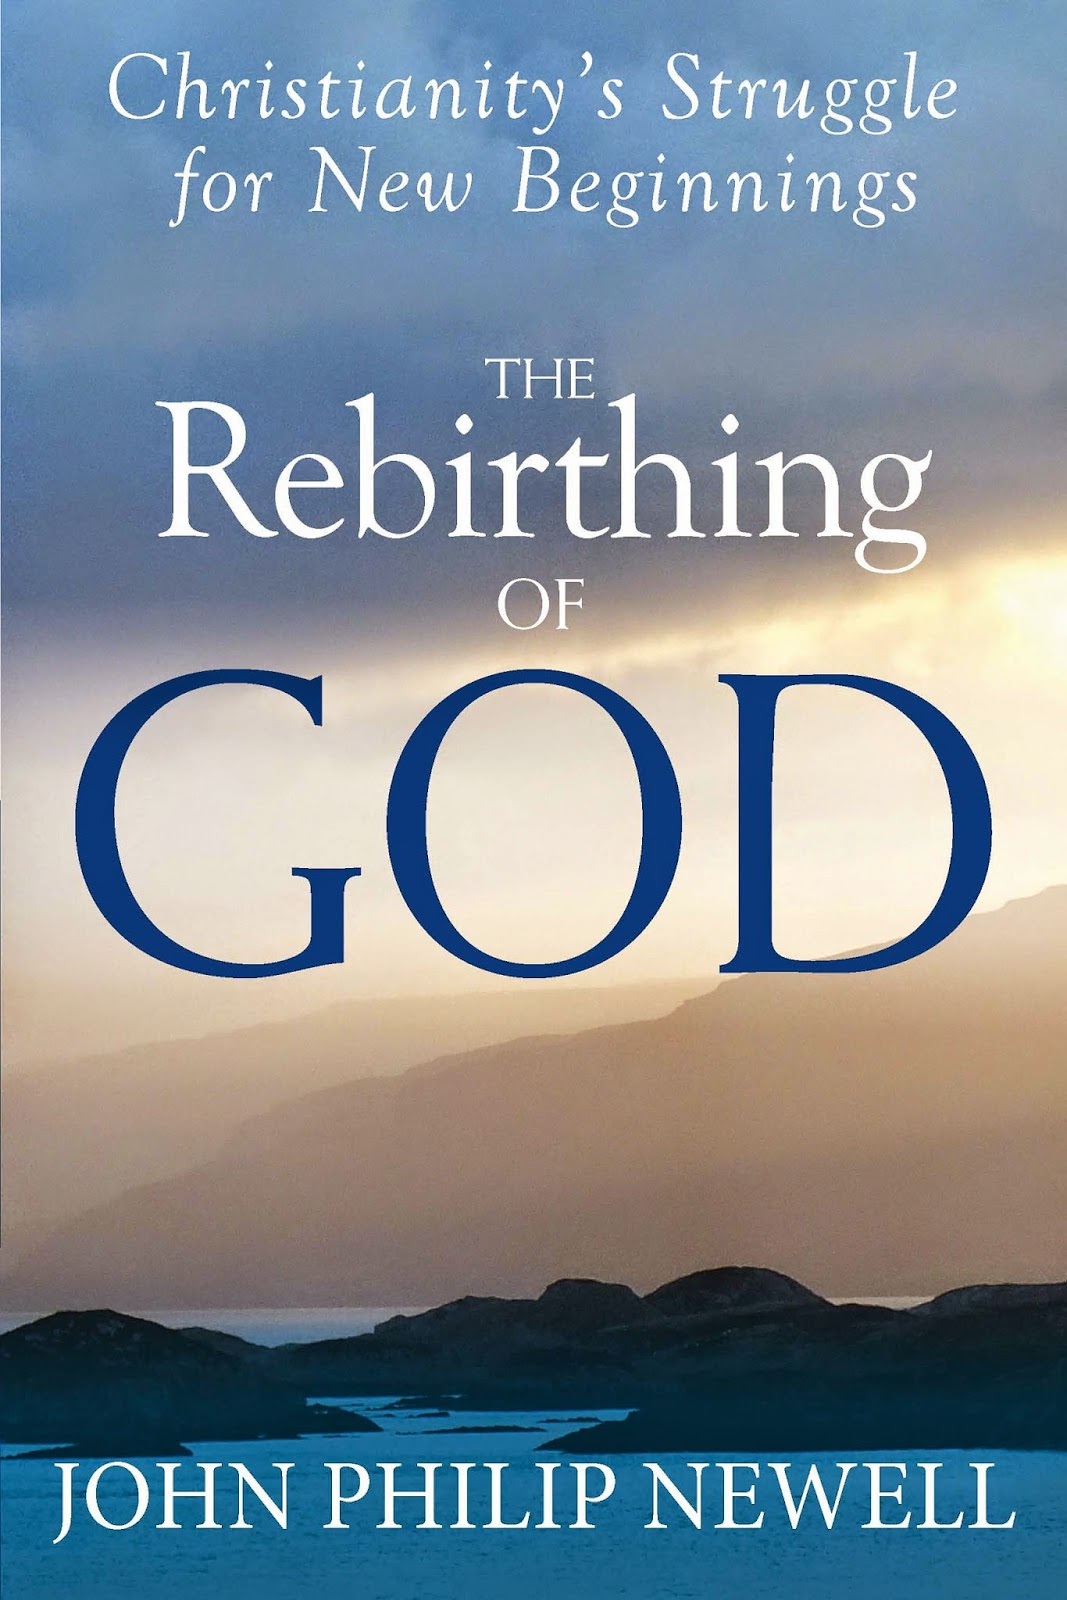 http://www.deep-books.co.uk/books/new-releases/9781594735424-rebirthing-of-god